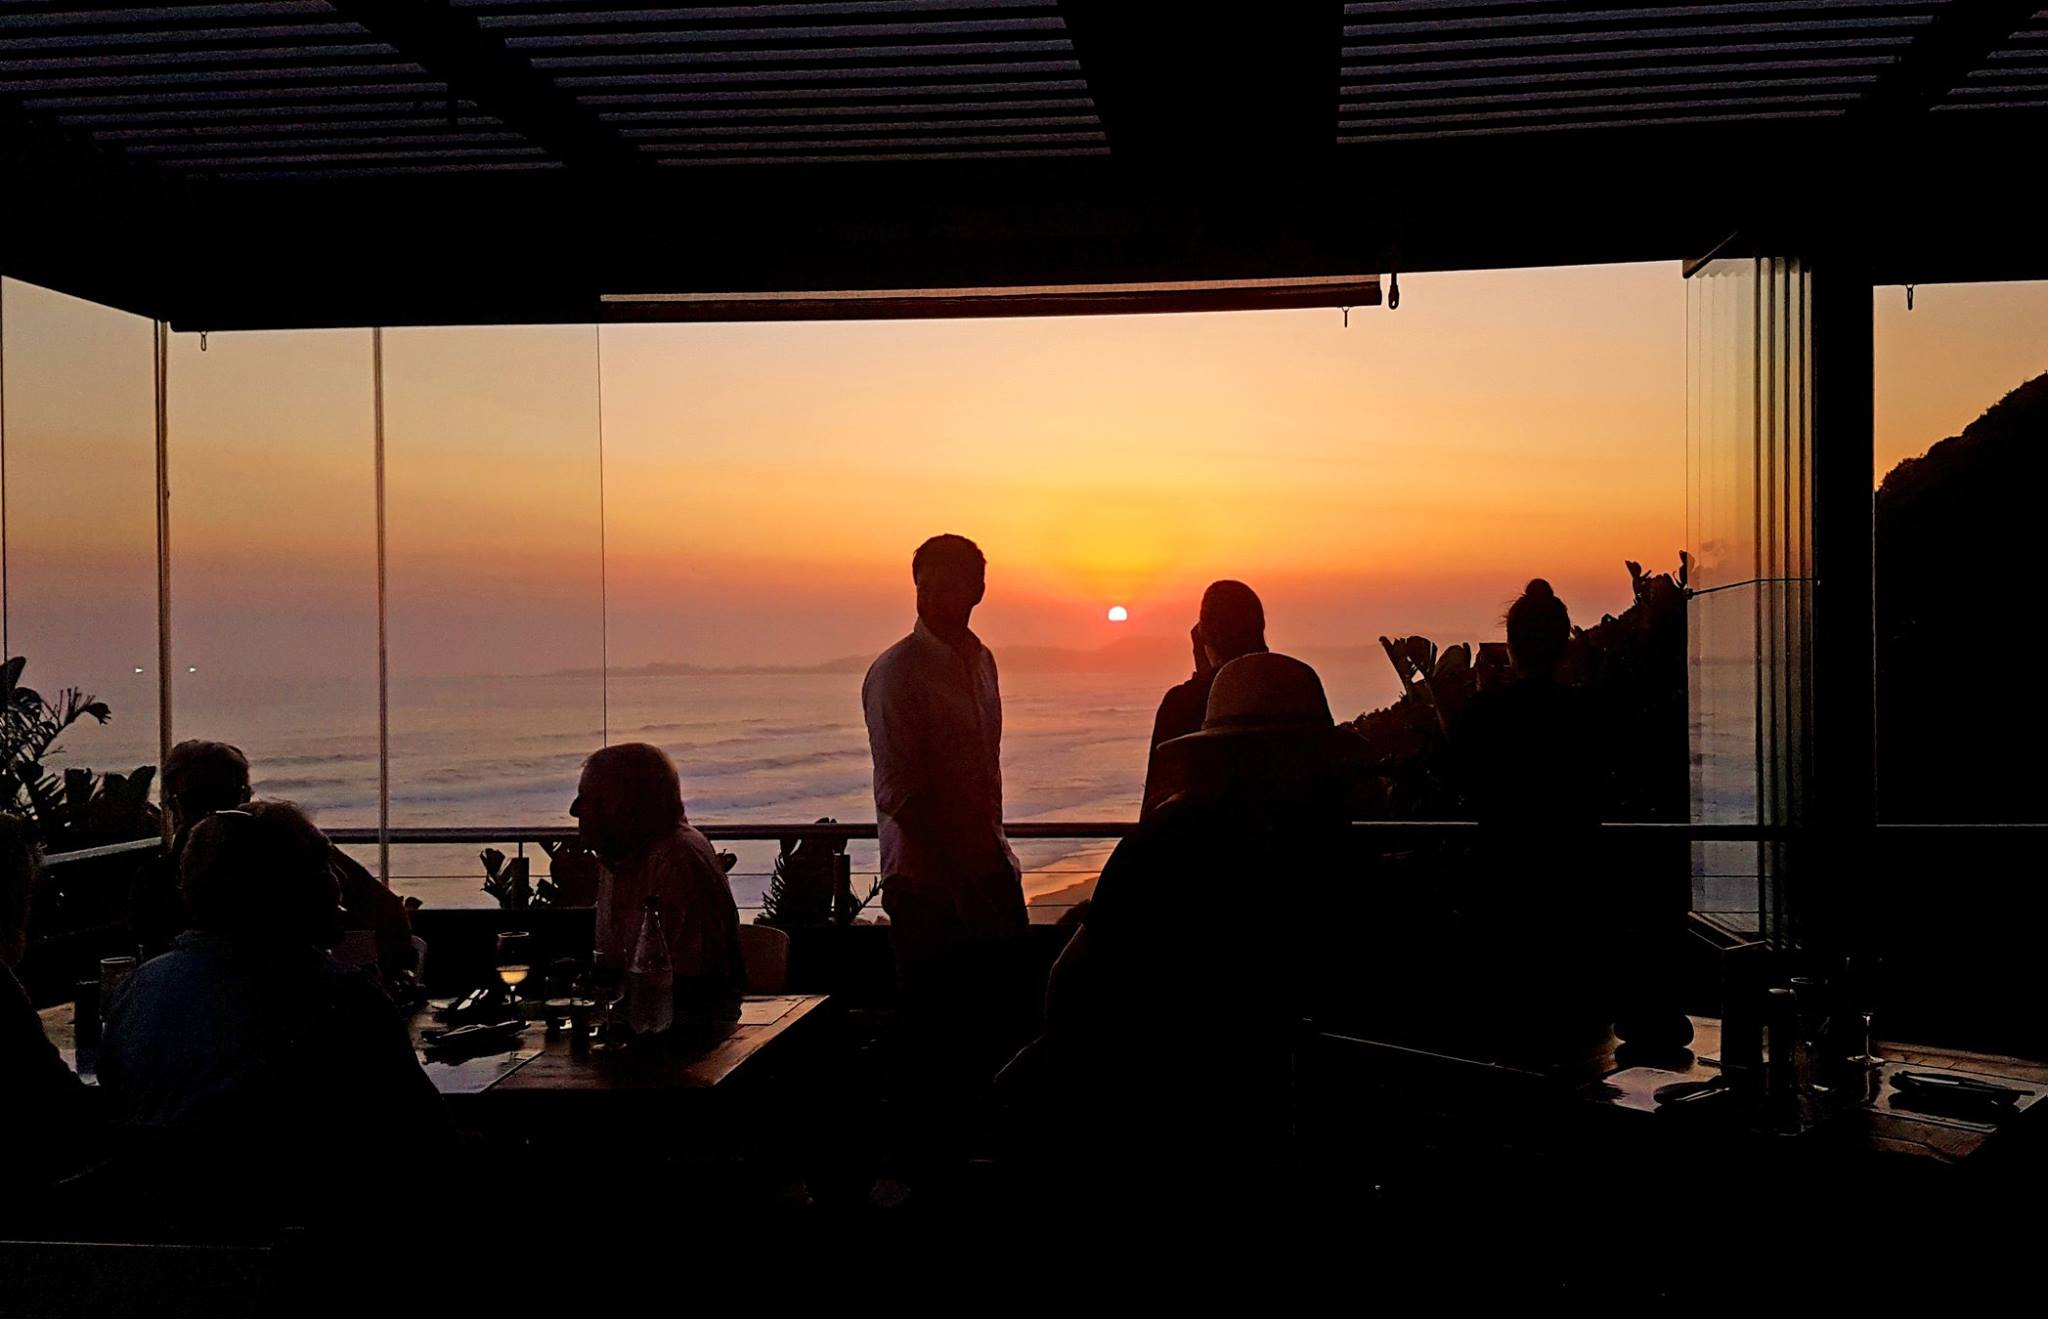 butterfly blu restaurant beachfront offers a great menu and wide selection of food at brento haven brenton on sea knysna